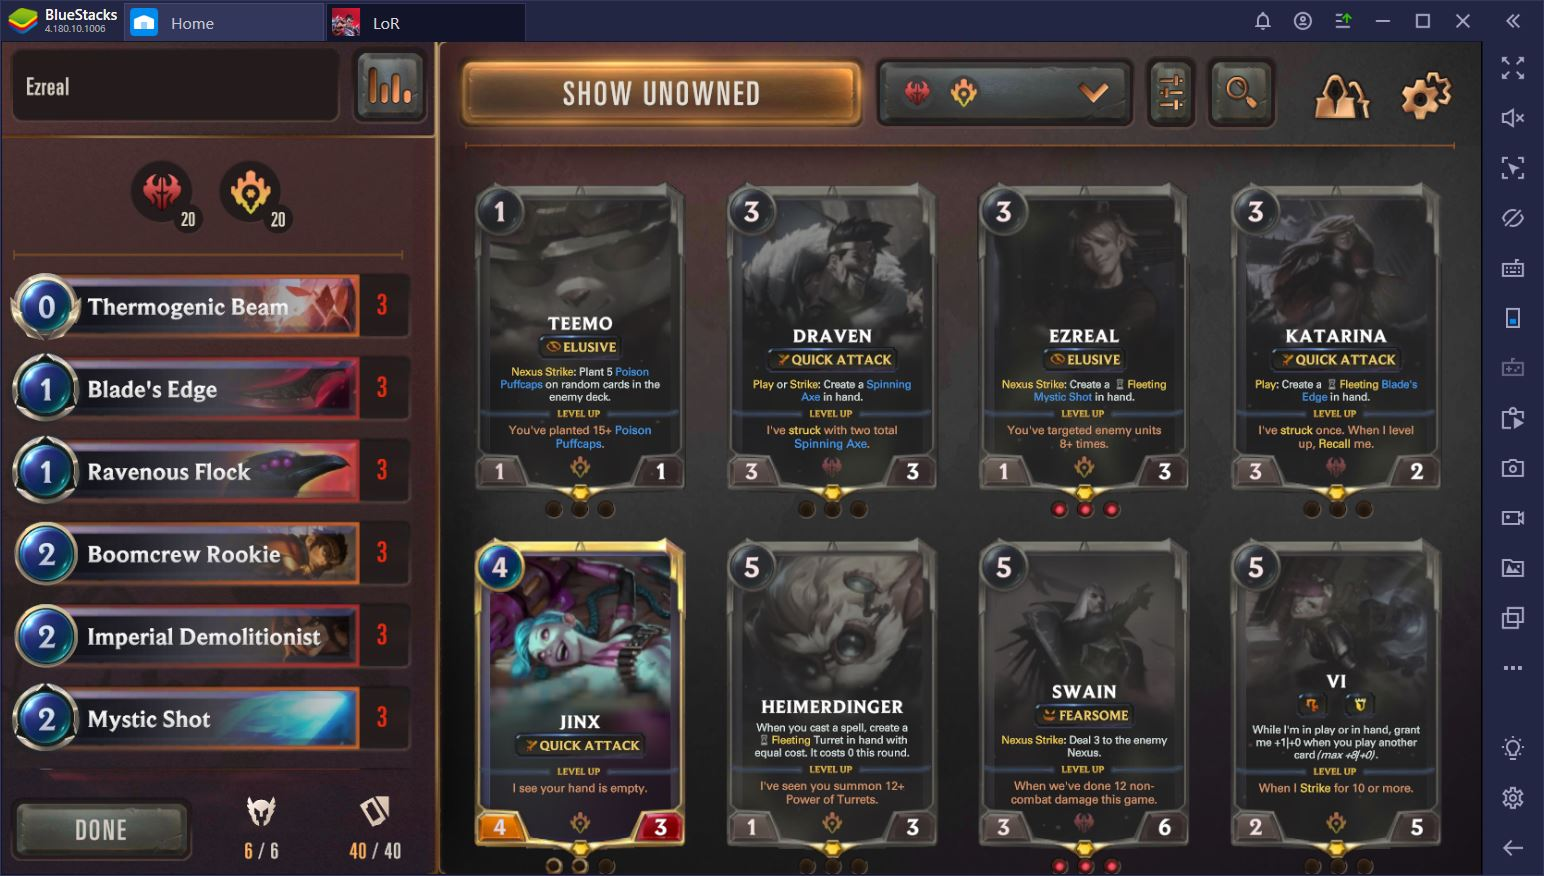 Legends of Runeterra on PC: Guide to the Most Common Deck Typologies